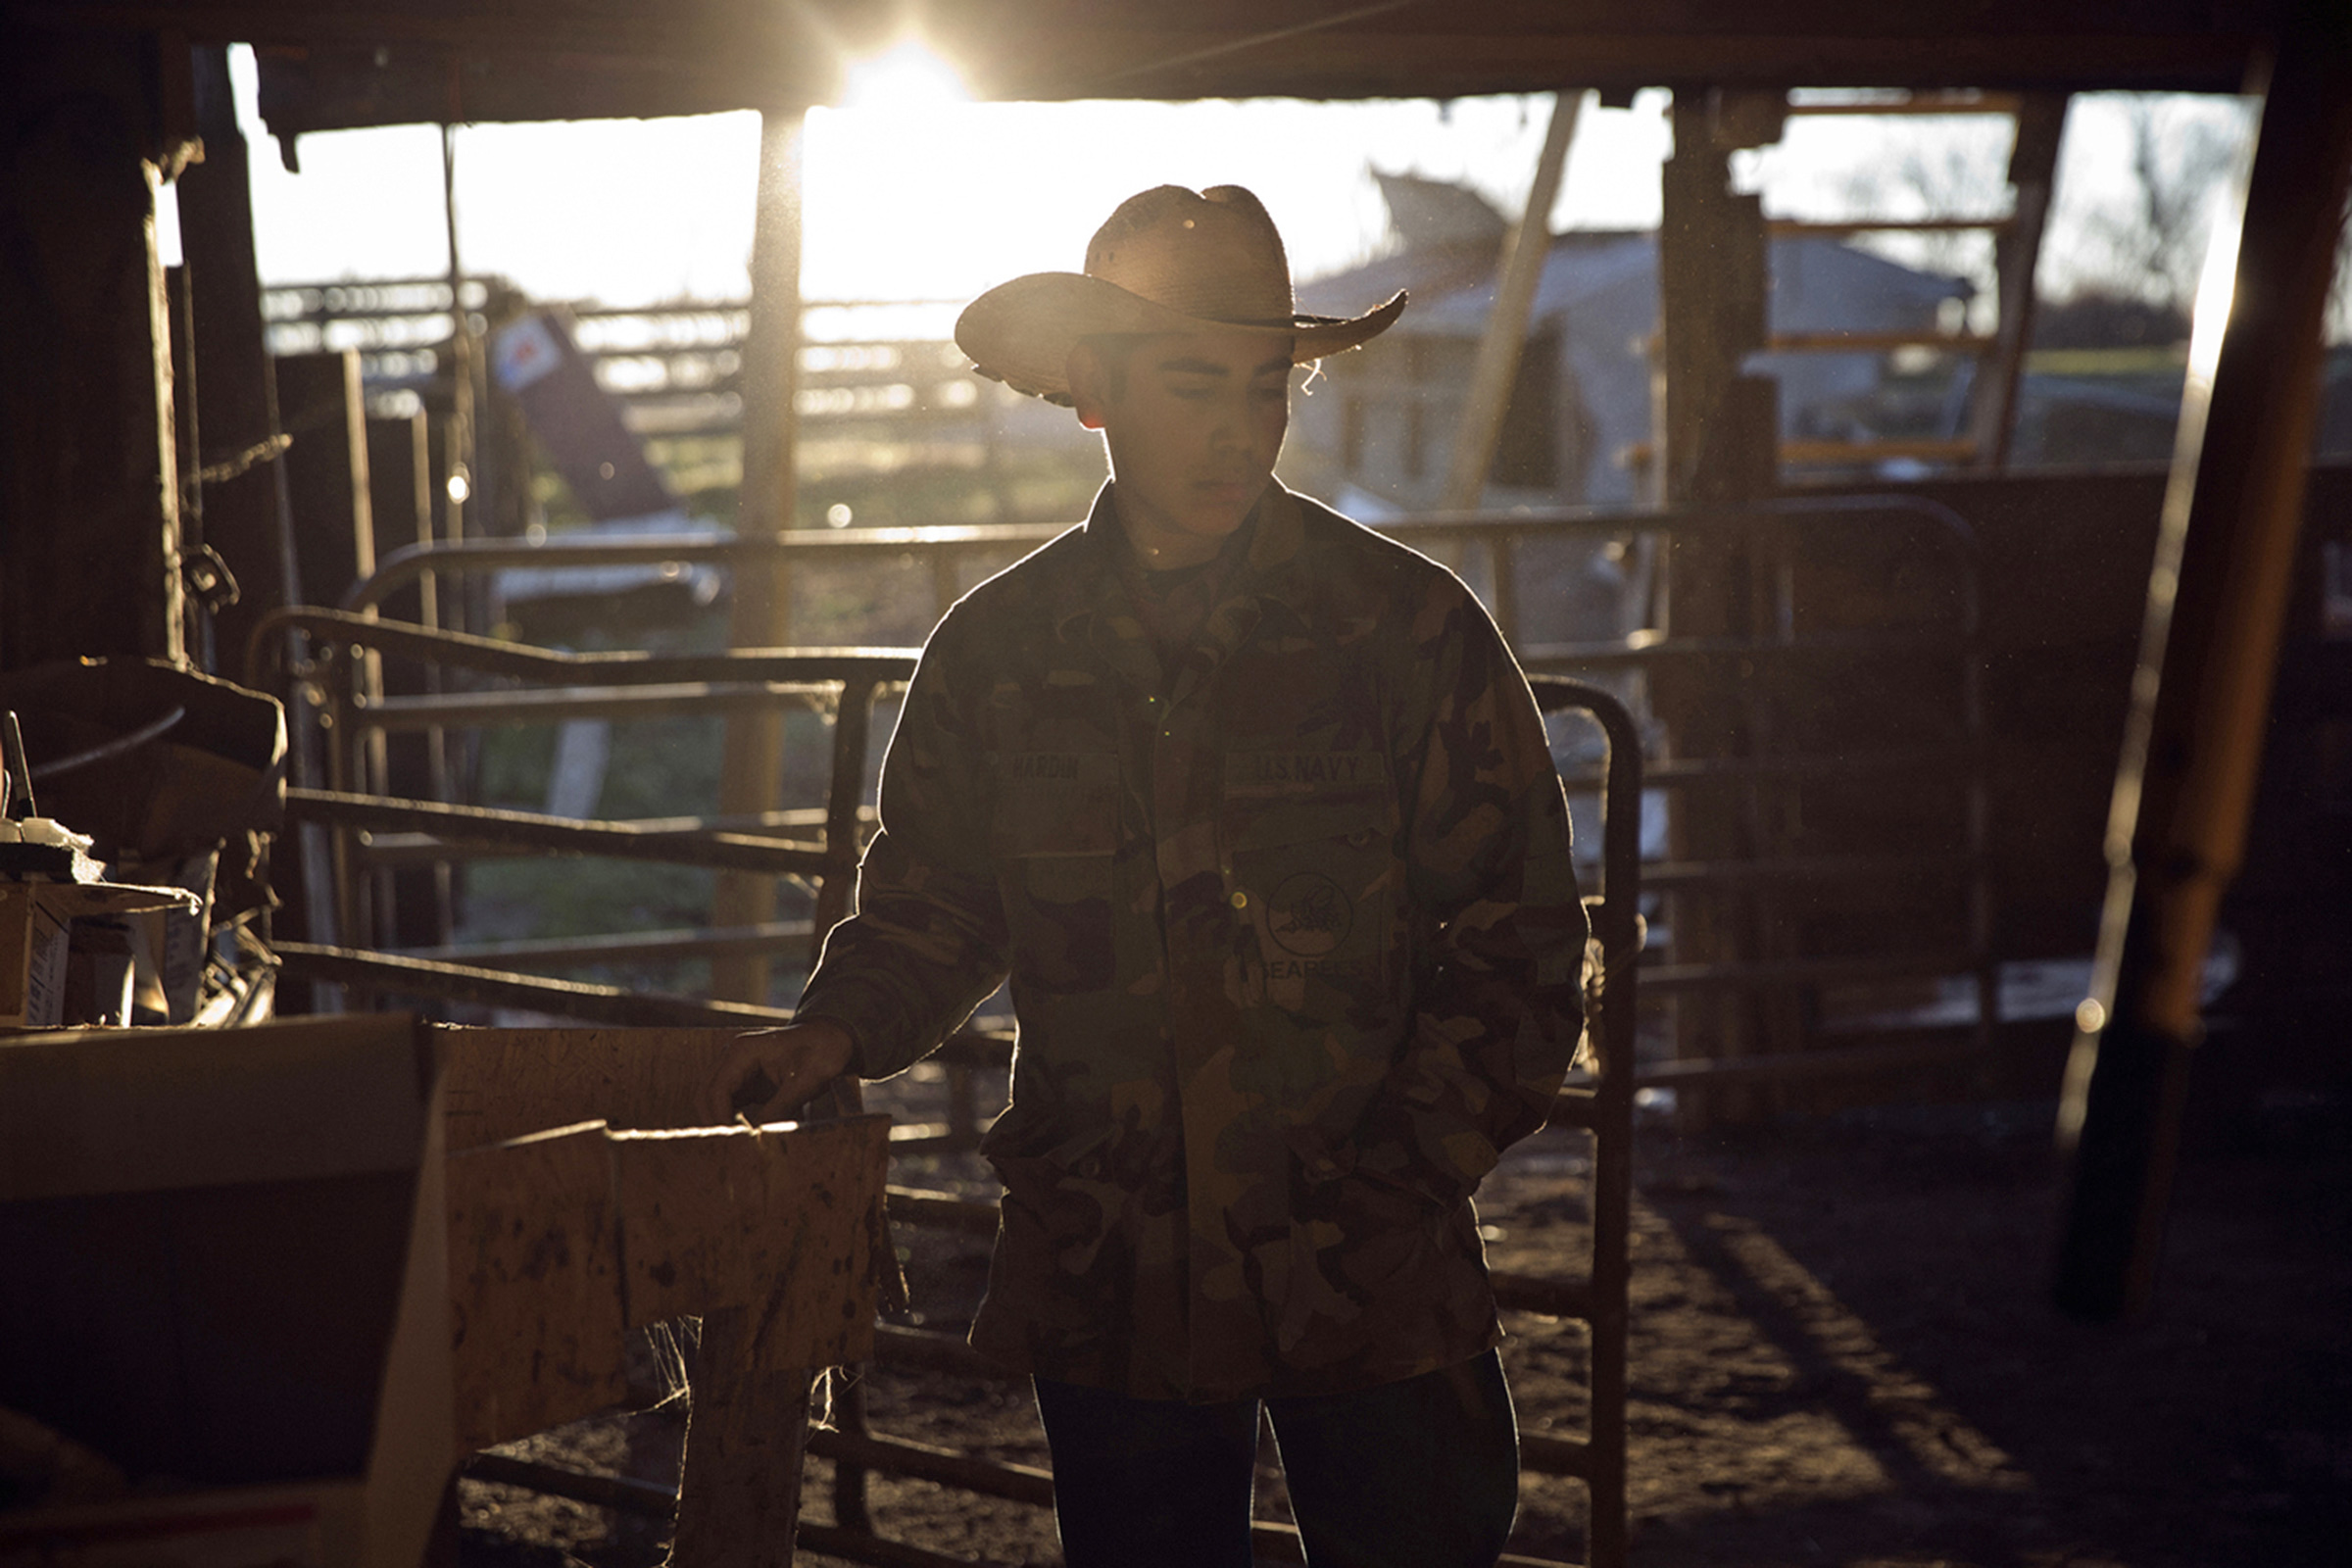 "Francisco Espinoza, 19, poses for a portrait on a ranch in Bowling Green, Kentucky, in December 2015. ""There are many differences between Americans and Hispanics. I mostly hang out with Hispanics that are born in America because we understand each other. But the Americans are nice, too, like my American girlfriend,"" Espinoza said. (Photo by Betina Garcia/GroundTruth)"